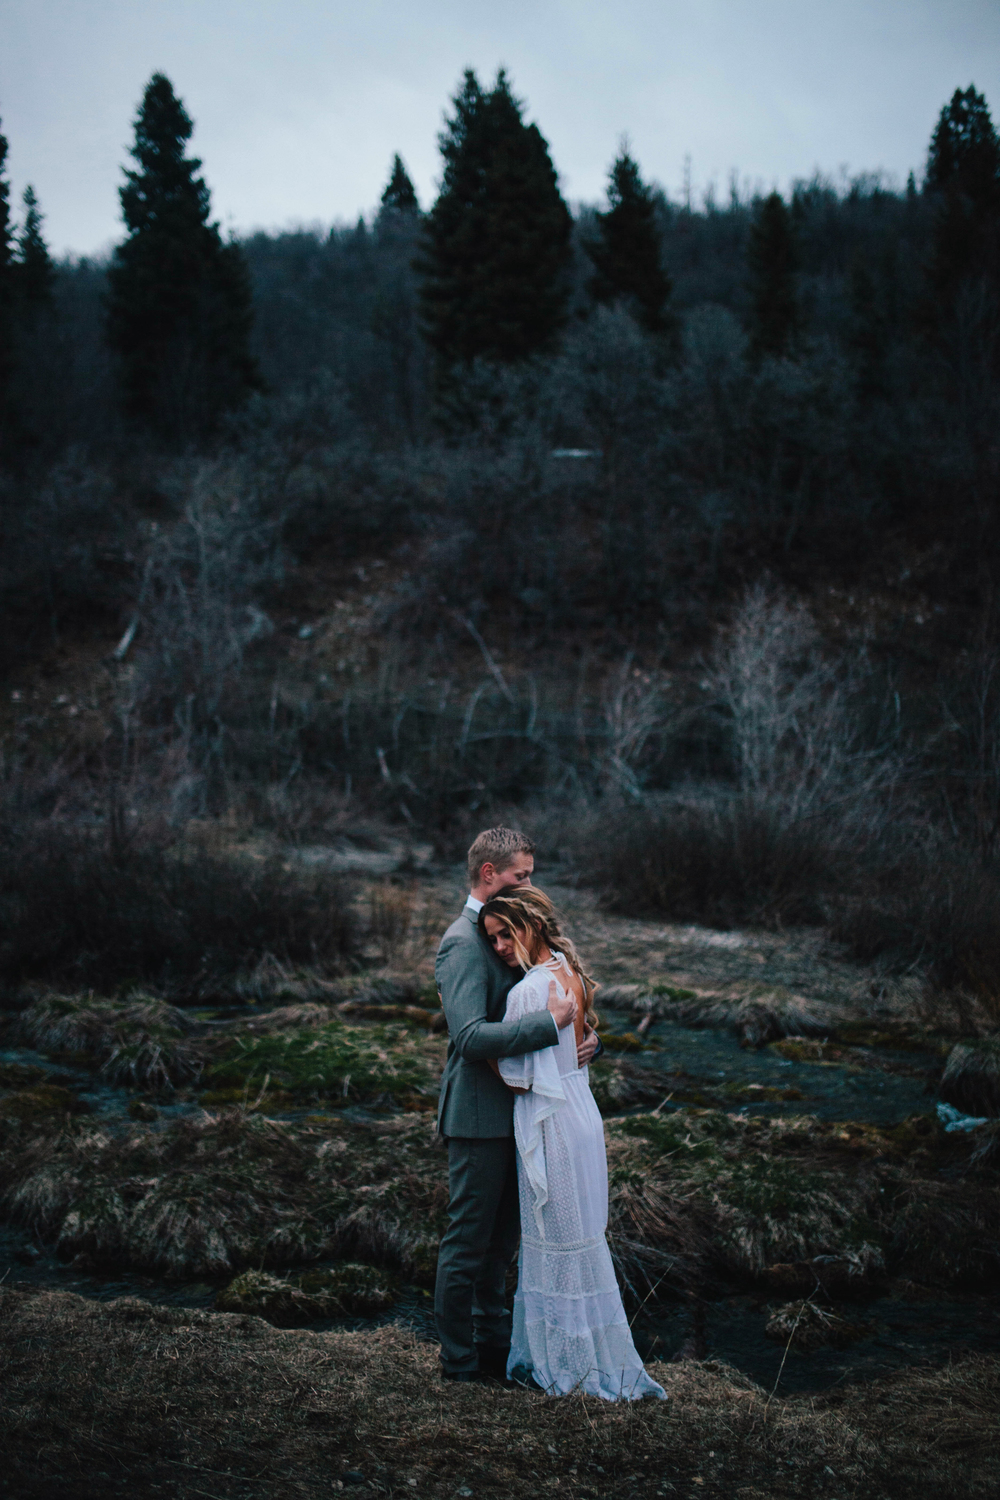 Candace & Thomas - Stylized Elopement - Whitney Justesen Photography-115.jpg